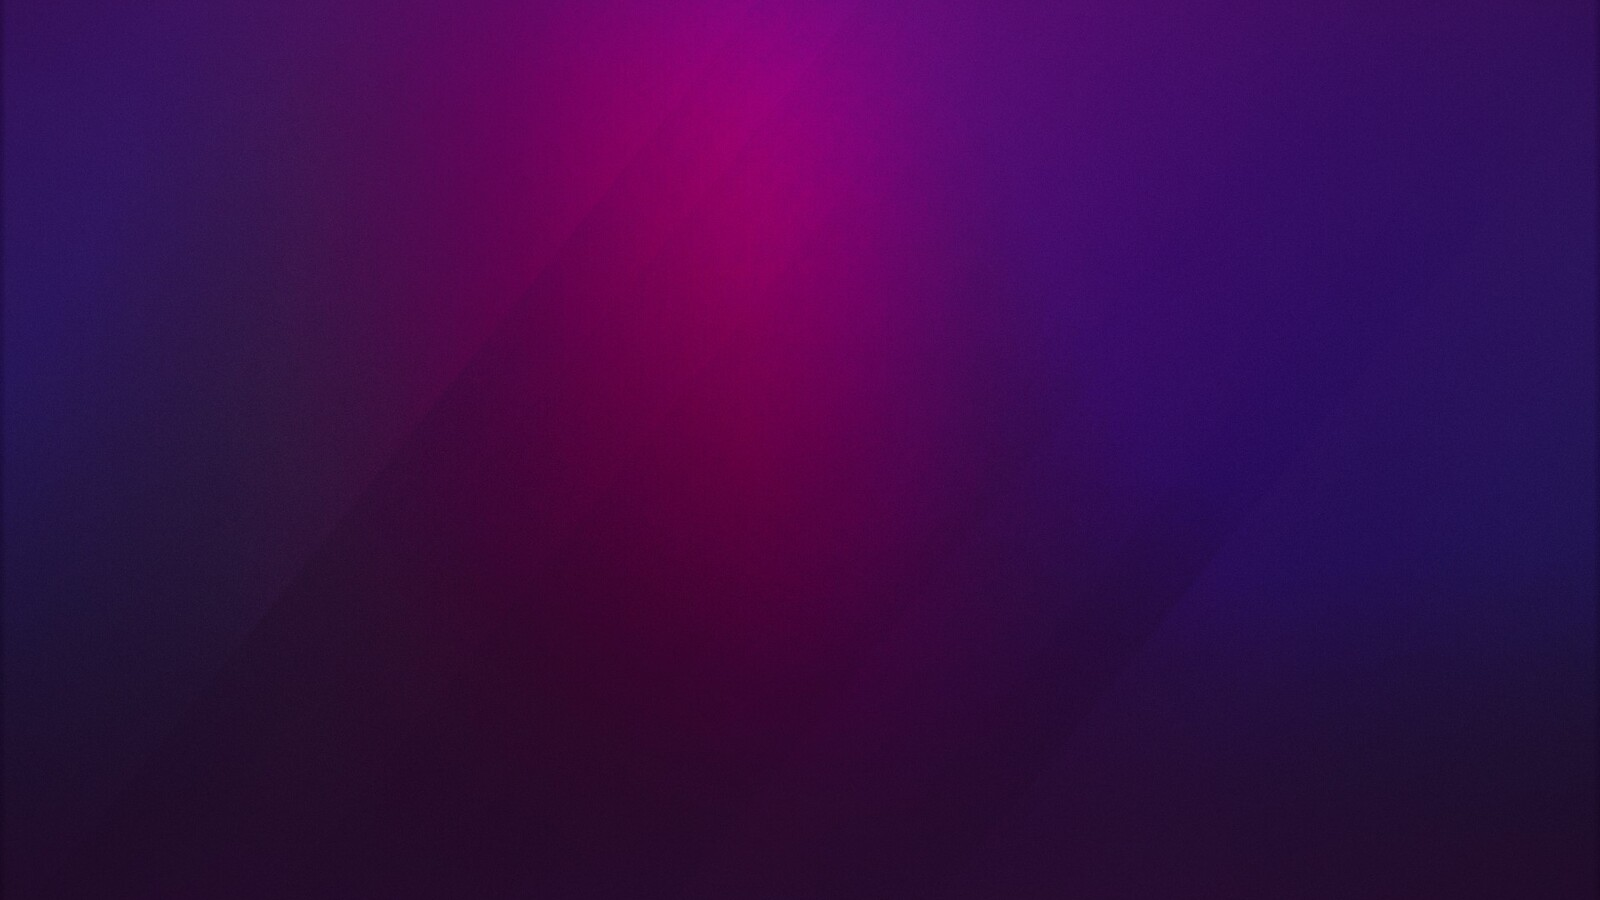 abstract-mix-colors-wide.jpg